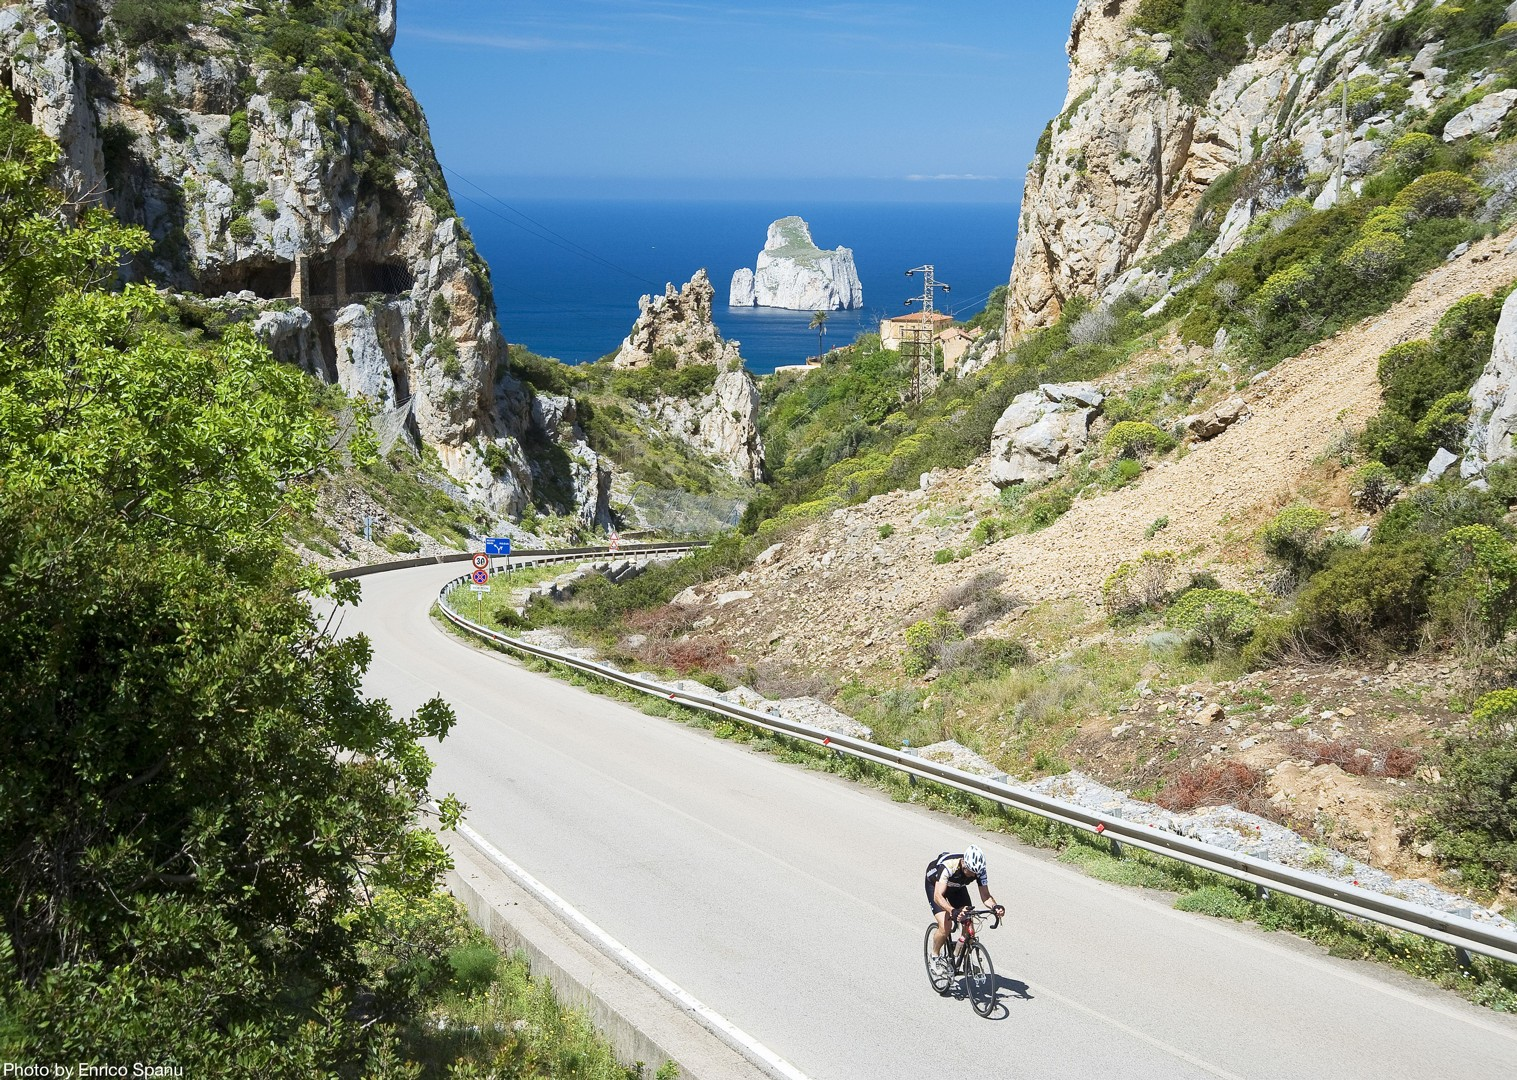 Road-Cycling-Holiday-Italy-Sardinia-Coastal-Explorer-Capo-Caccia.jpg - Italy - Sardinia - Coastal Explorer - Guided Road Cycling Holiday - Italia Road Cycling